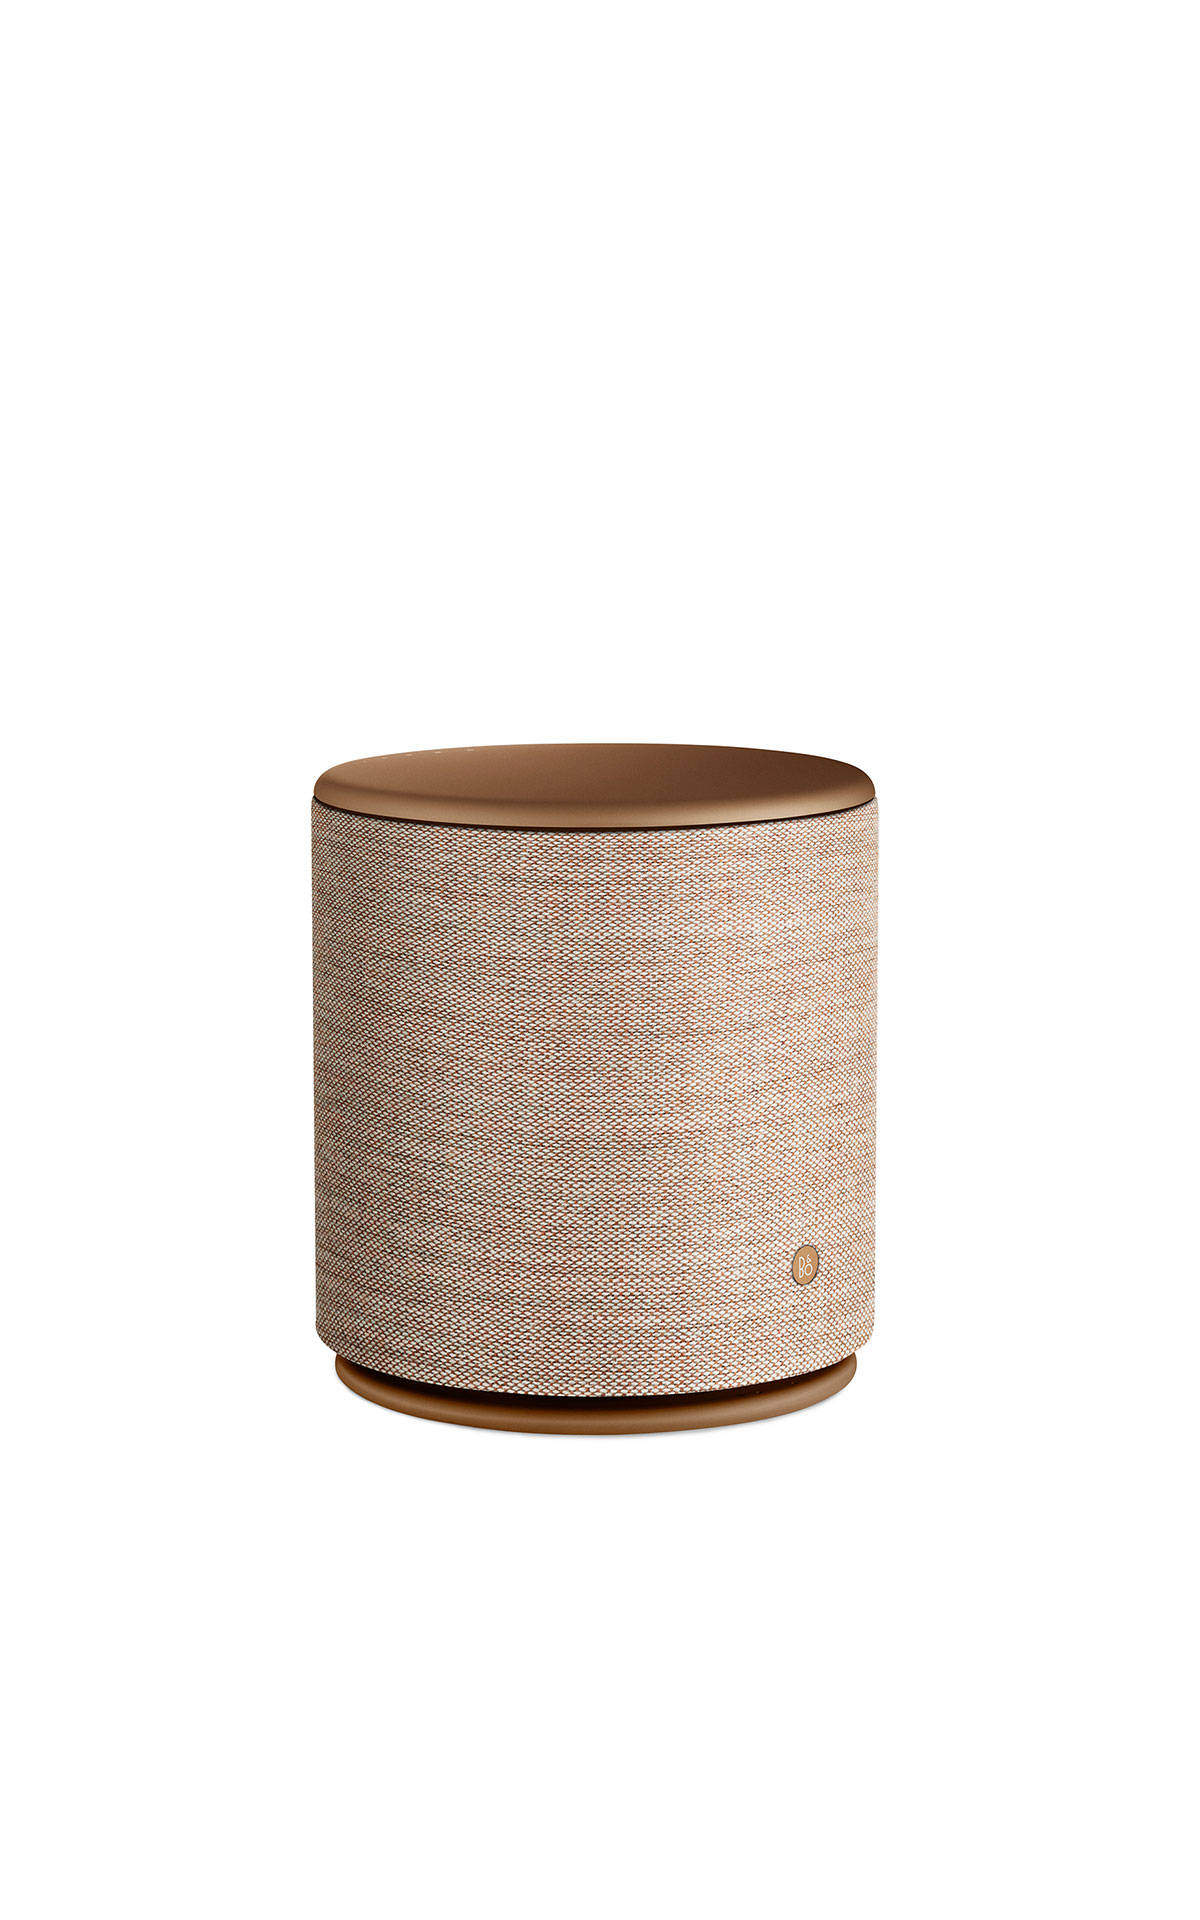 Bang & Olufsen Beoplay M5 bronze from Bicester Village